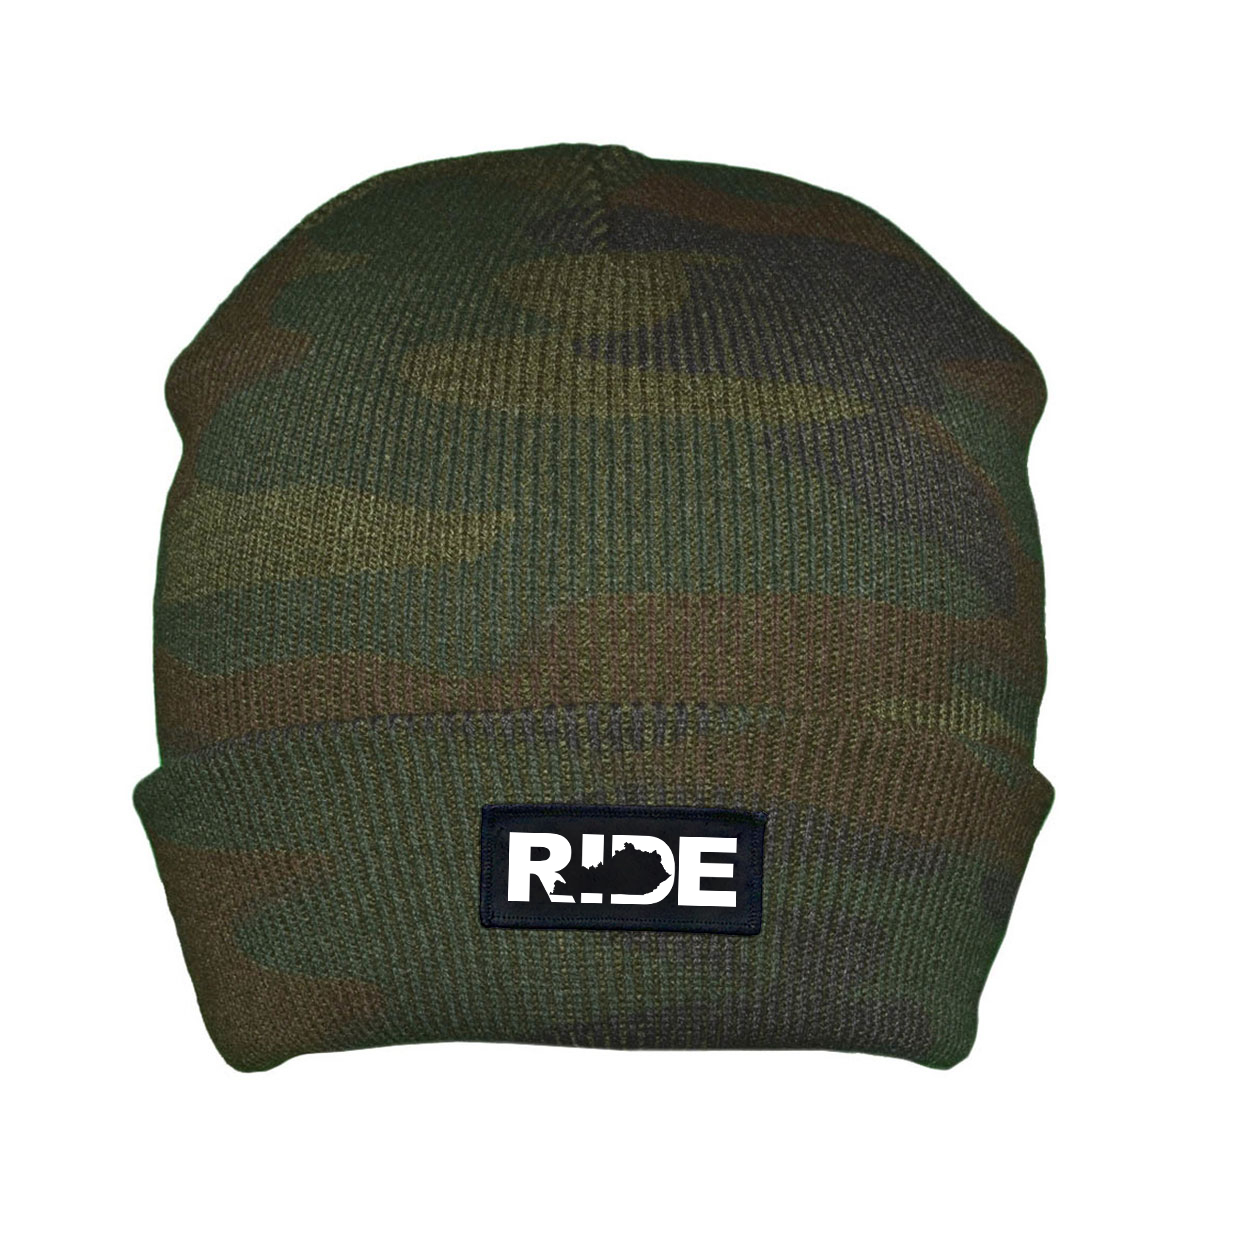 Ride Kentucky Night Out Woven Patch Roll Up Skully Beanie Camo (White Logo)